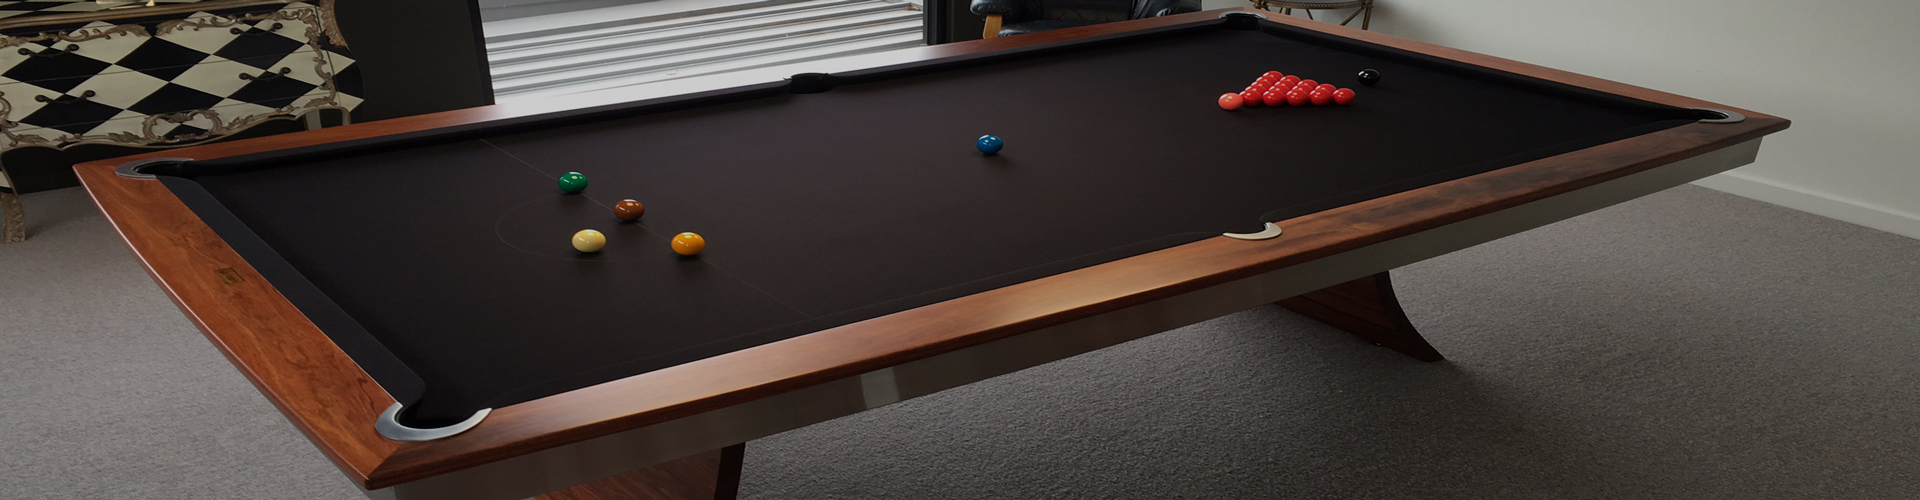 Quedos Billiard Tables - Australia's Most Awarded Pool ...